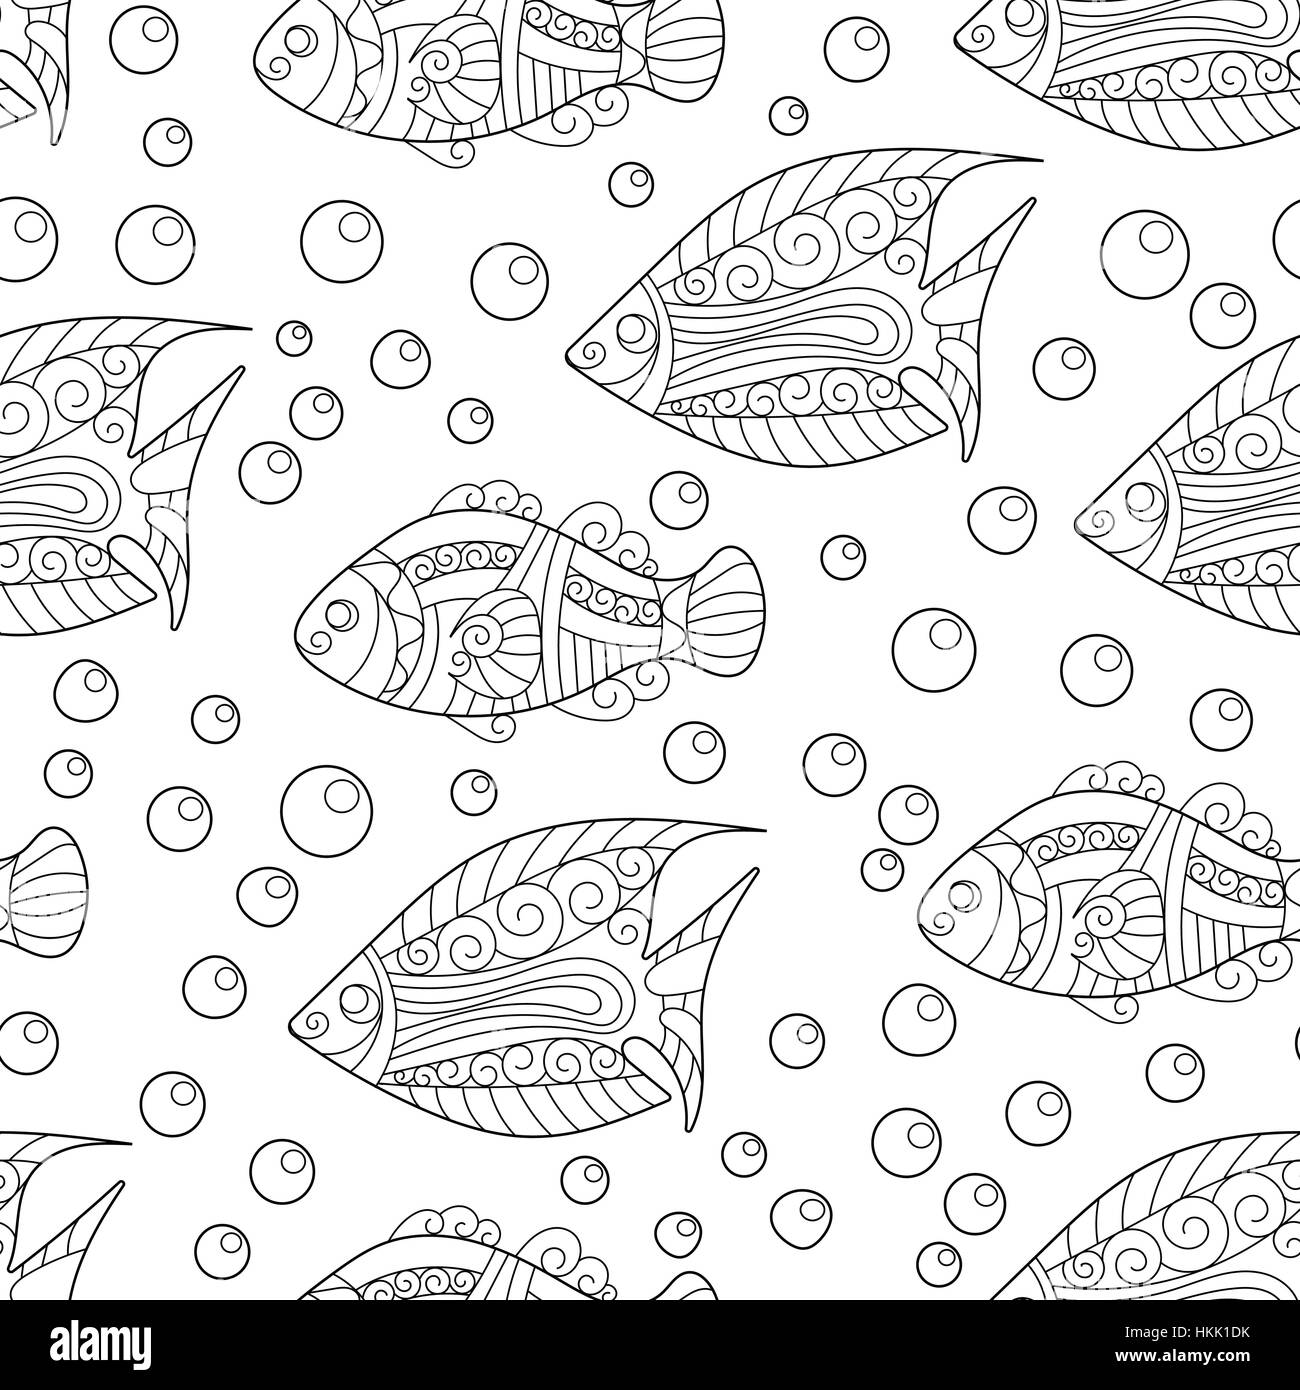 Coloring pages for adult. book. Antistress. Seamless abstract Stock ...